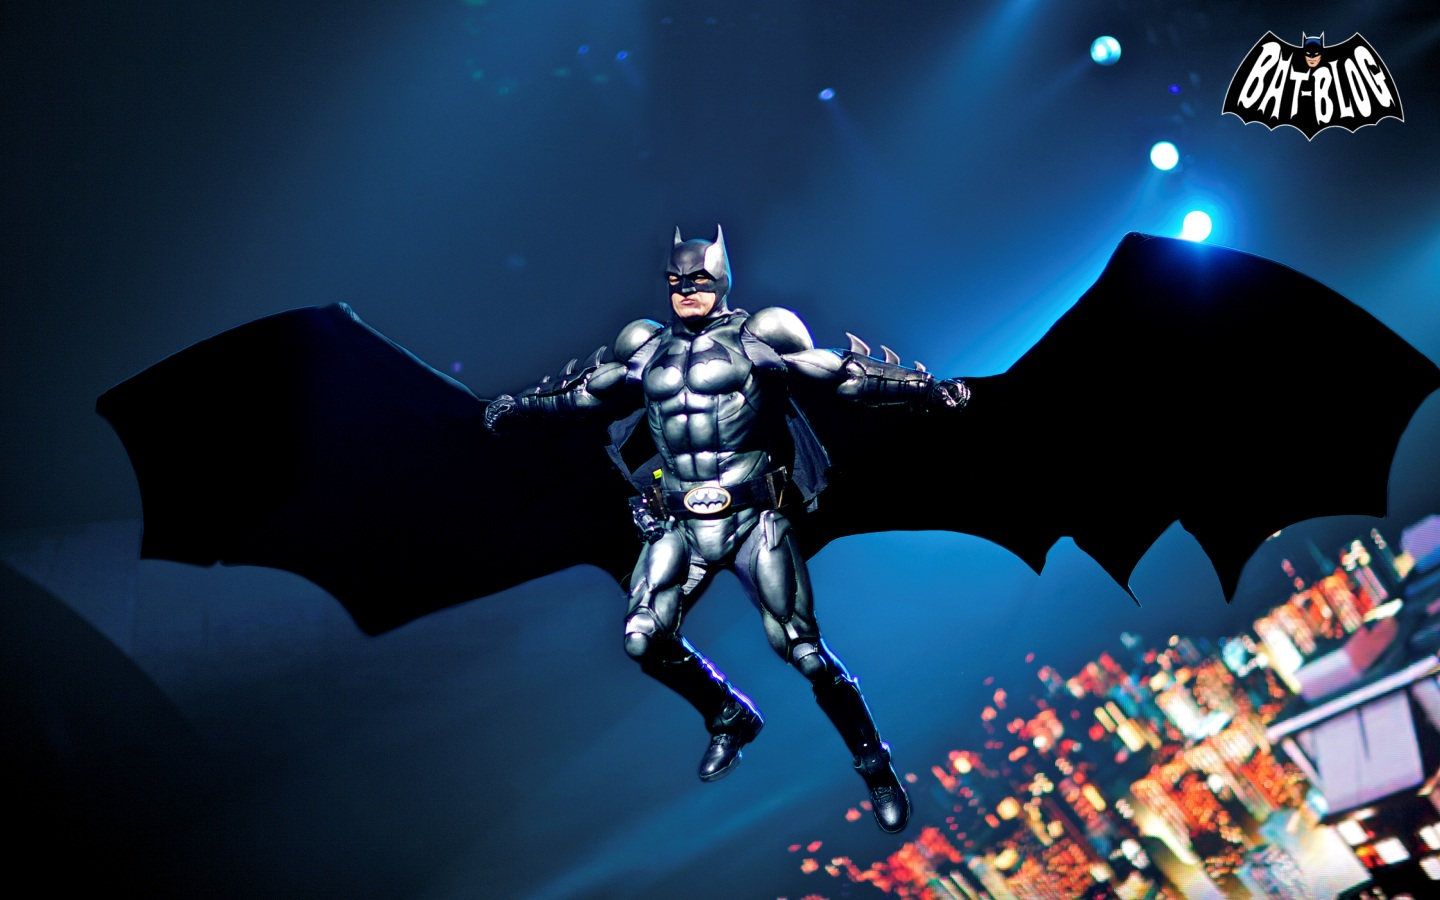 Iphone Shockwave Wallpapers: Batman Live Wallpaper